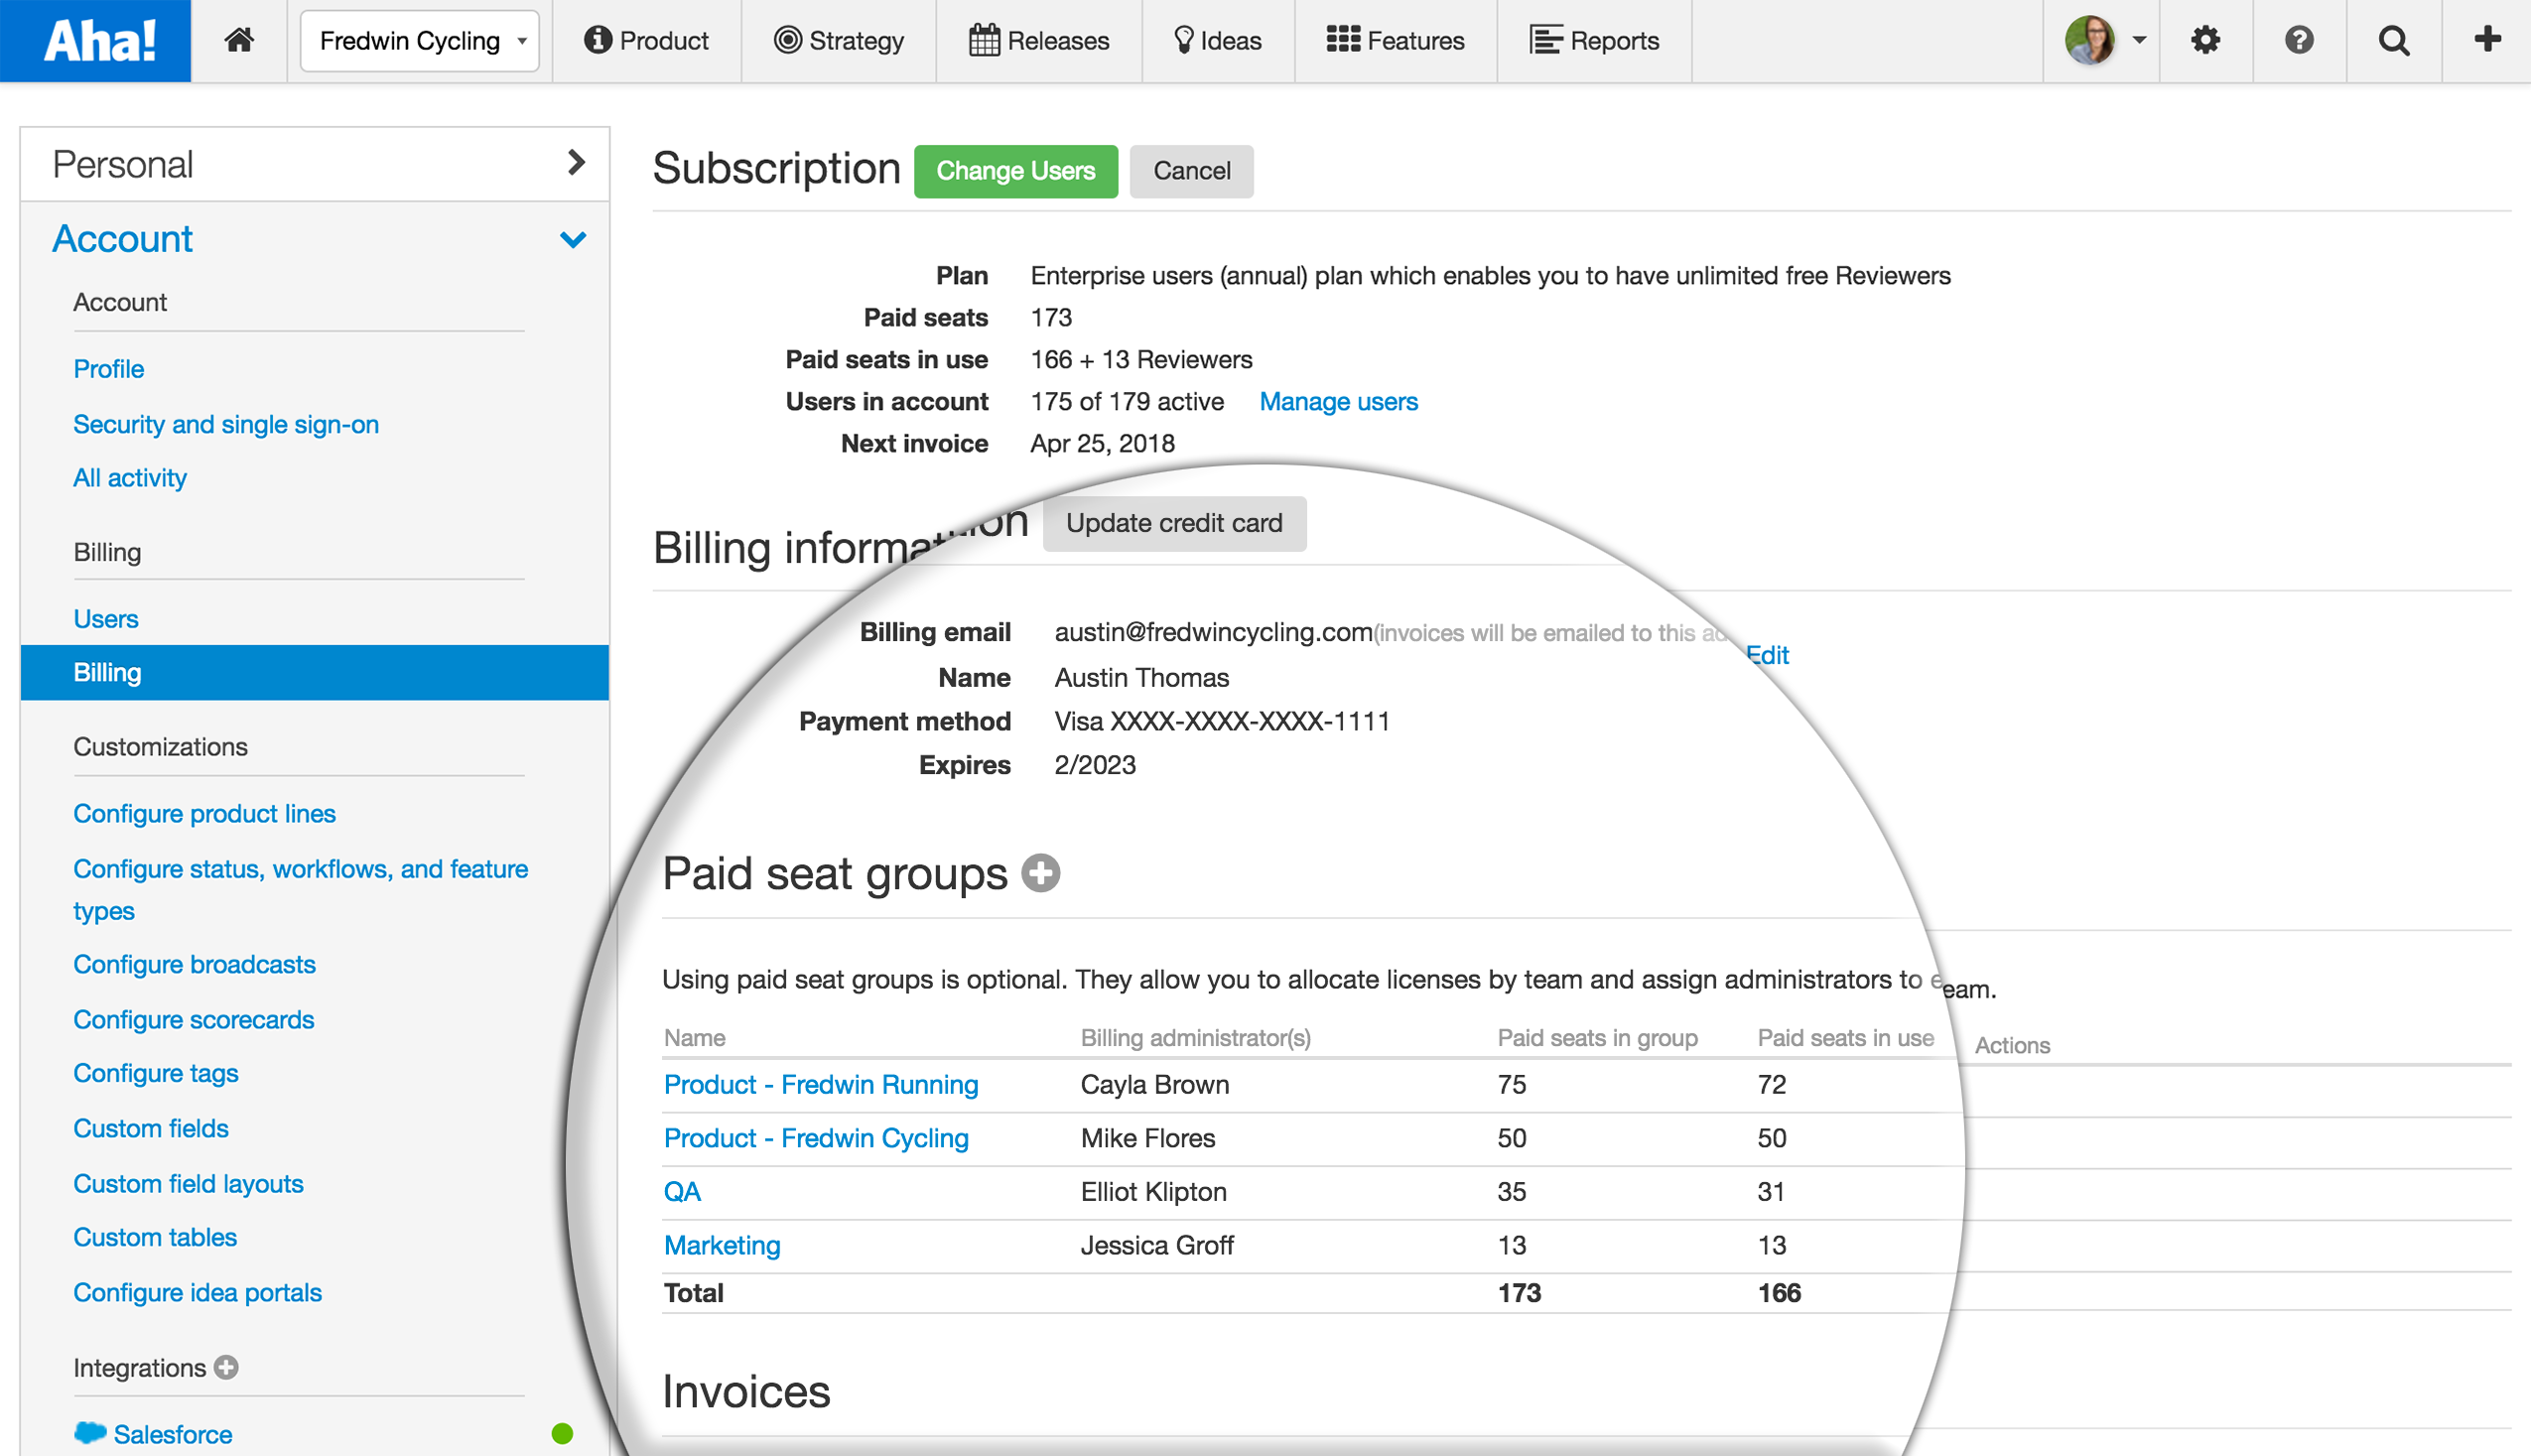 Aha roadmapping software - settings page, table of paid seat groups